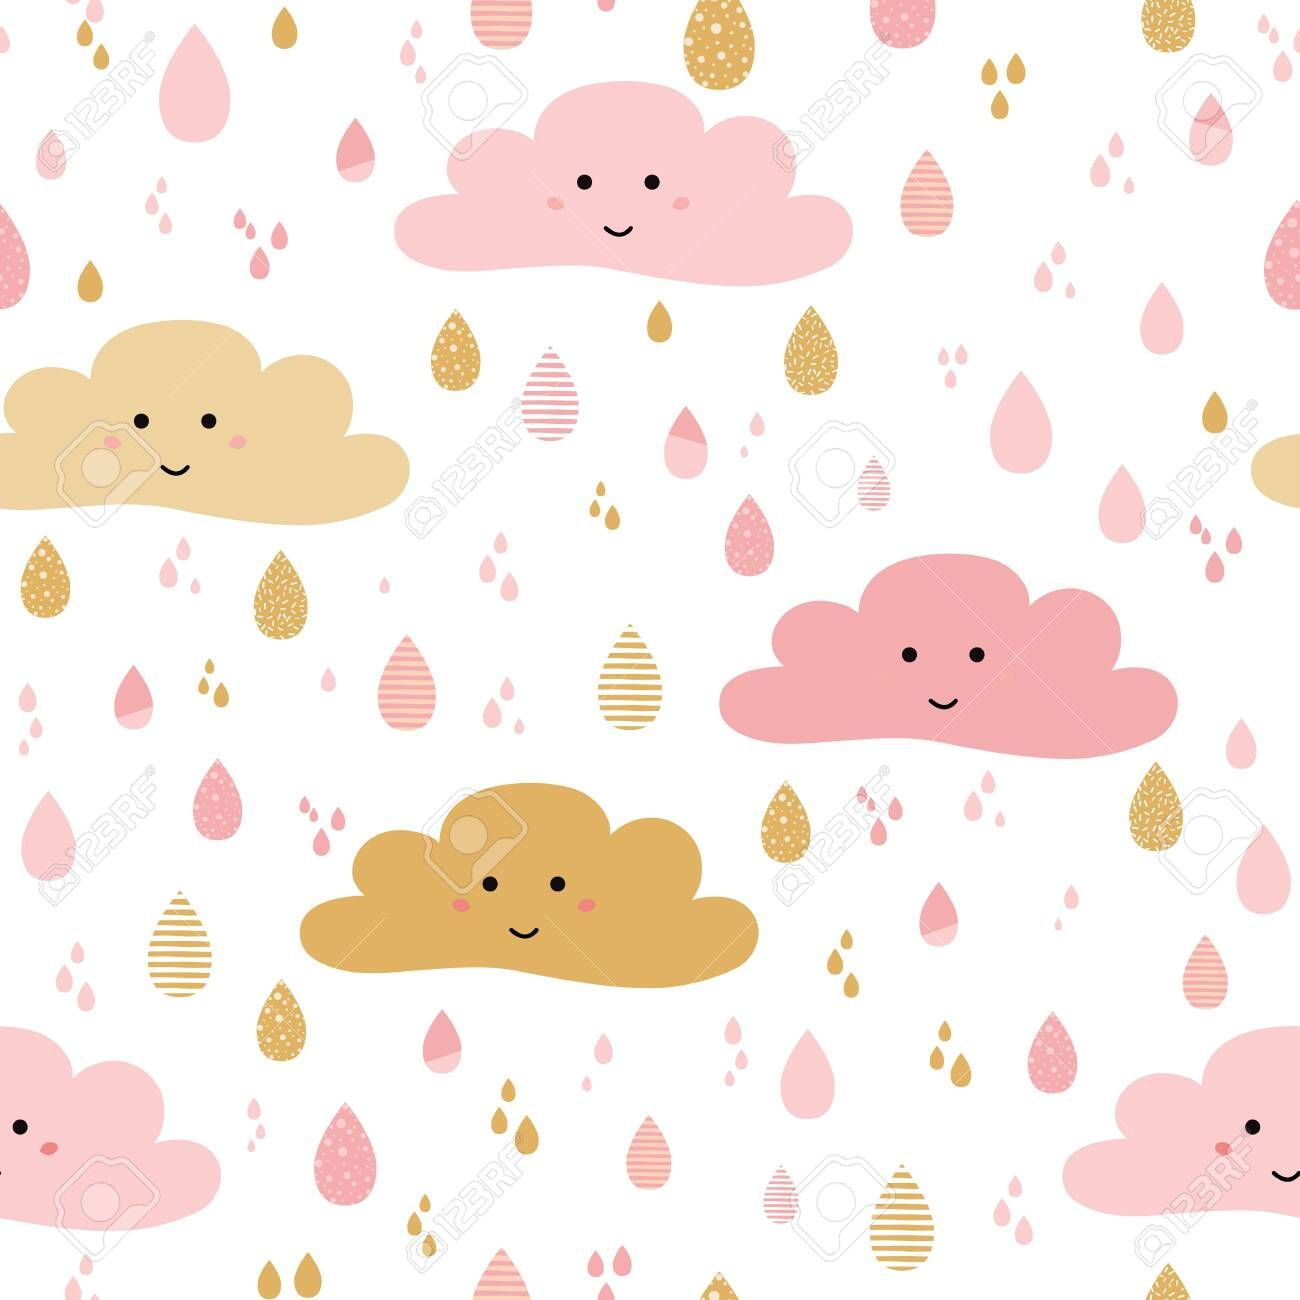 Cute Pink Seamless Pattern Background With Cartoon Clouds Drop For Little Girls Babies Clothes Pajamas Background Patterns Cartoon Clouds Baby Girl Wallpaper